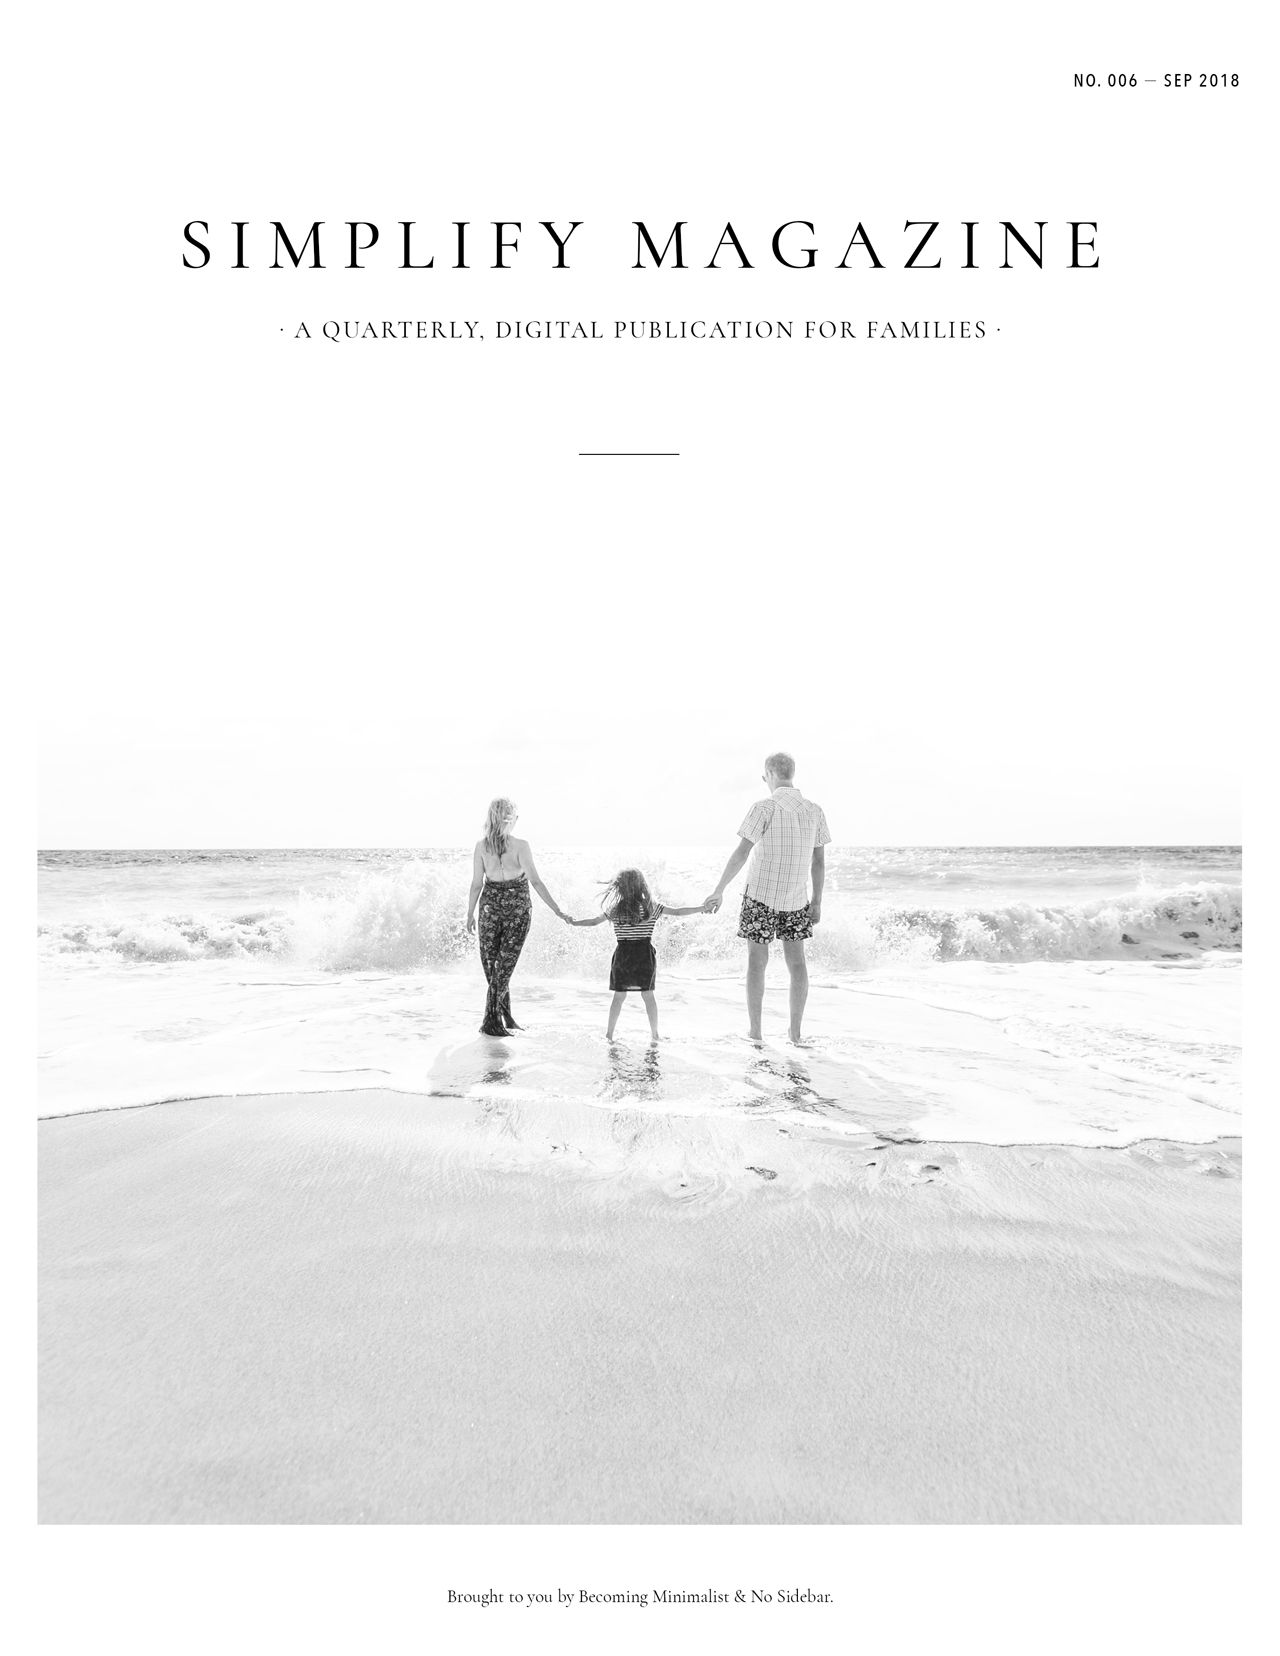 Simplify Magazine Issue #006